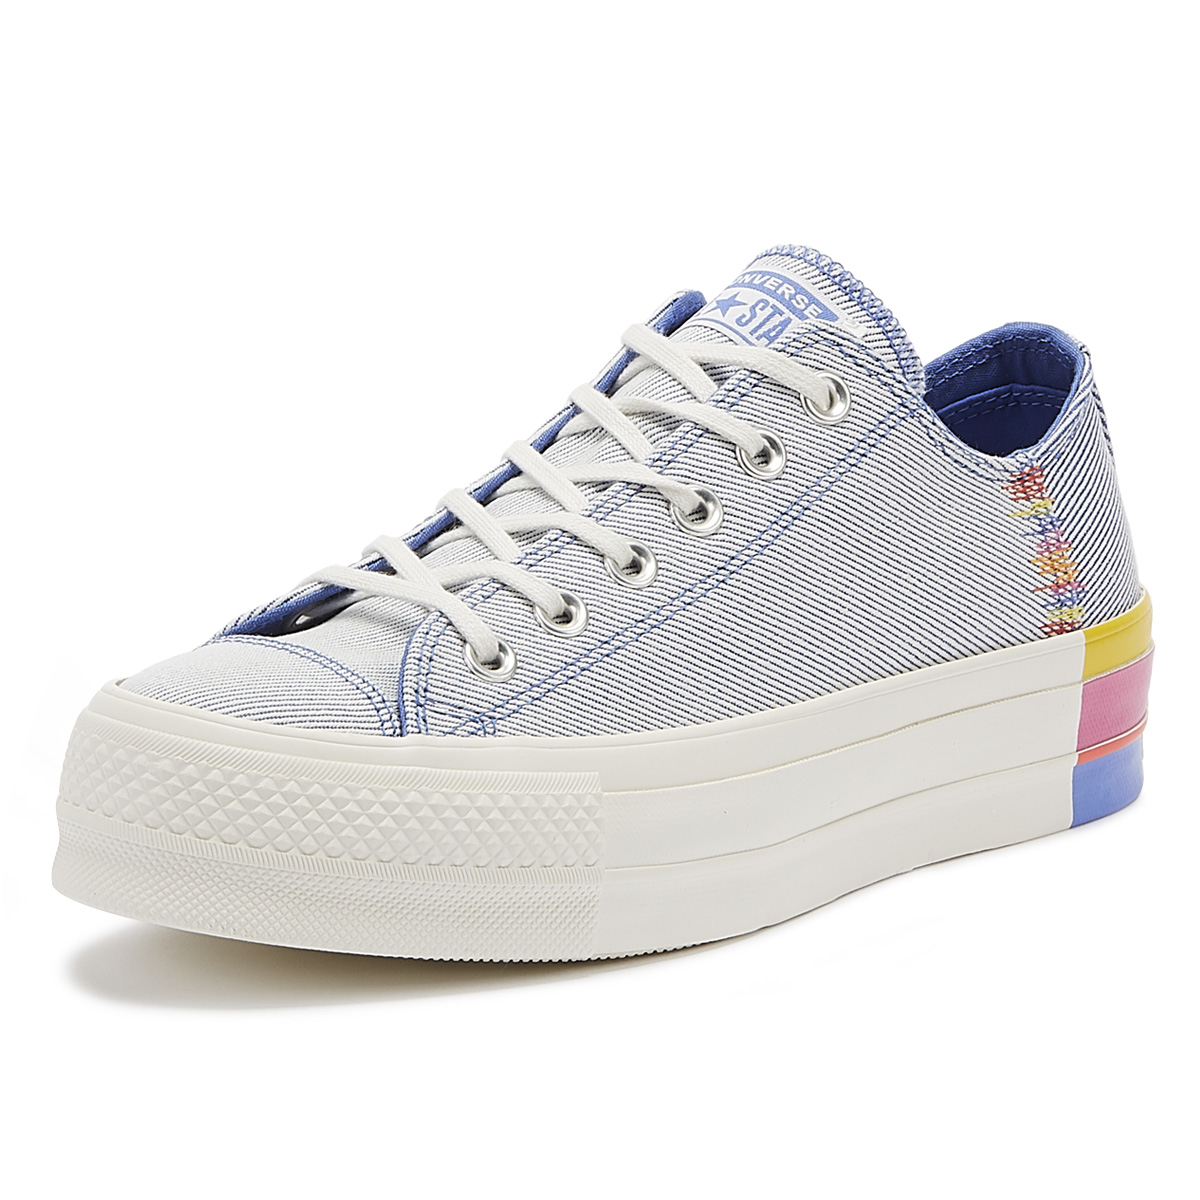 Details about Converse Chuck Taylor All Star Lift Rainbow Womens Blue Ox Trainers Skate Shoes